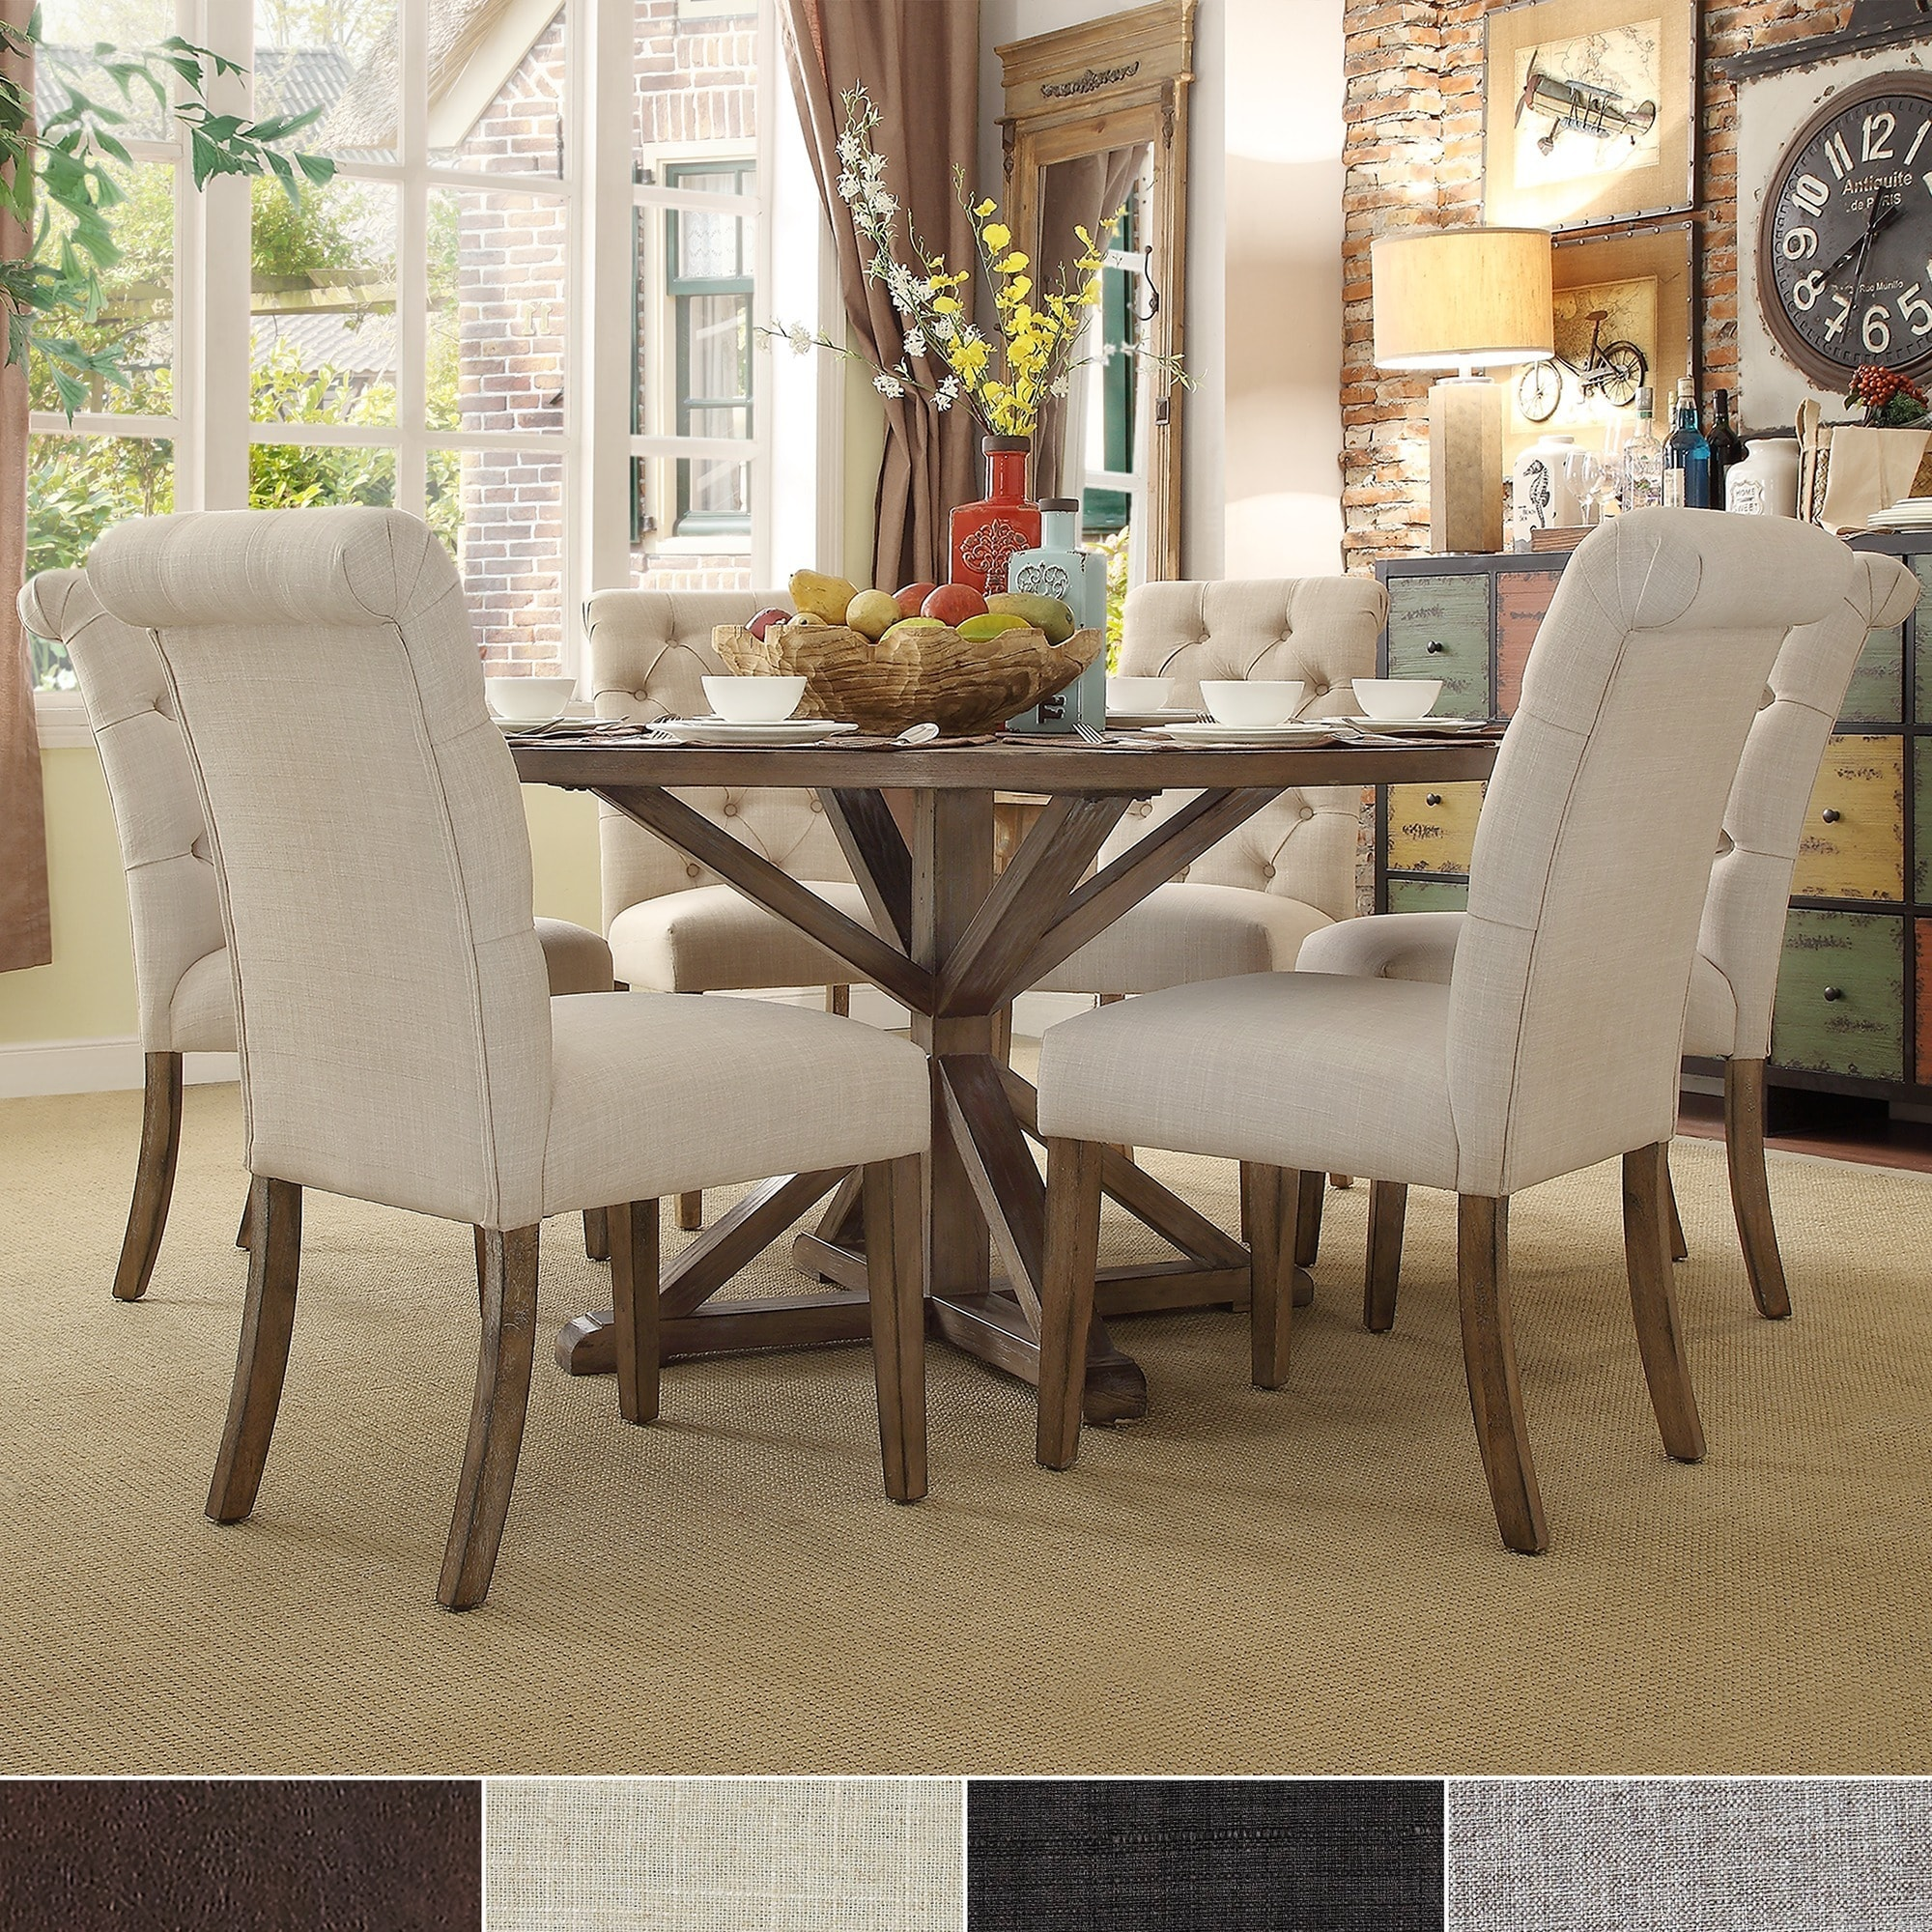 Benchwright Rustic X-base Round Pine Wood Rolled Back 7-piece Dining Set by  iNSPIRE Q Artisan - Free Shipping Today - Overstock.com - 17228681